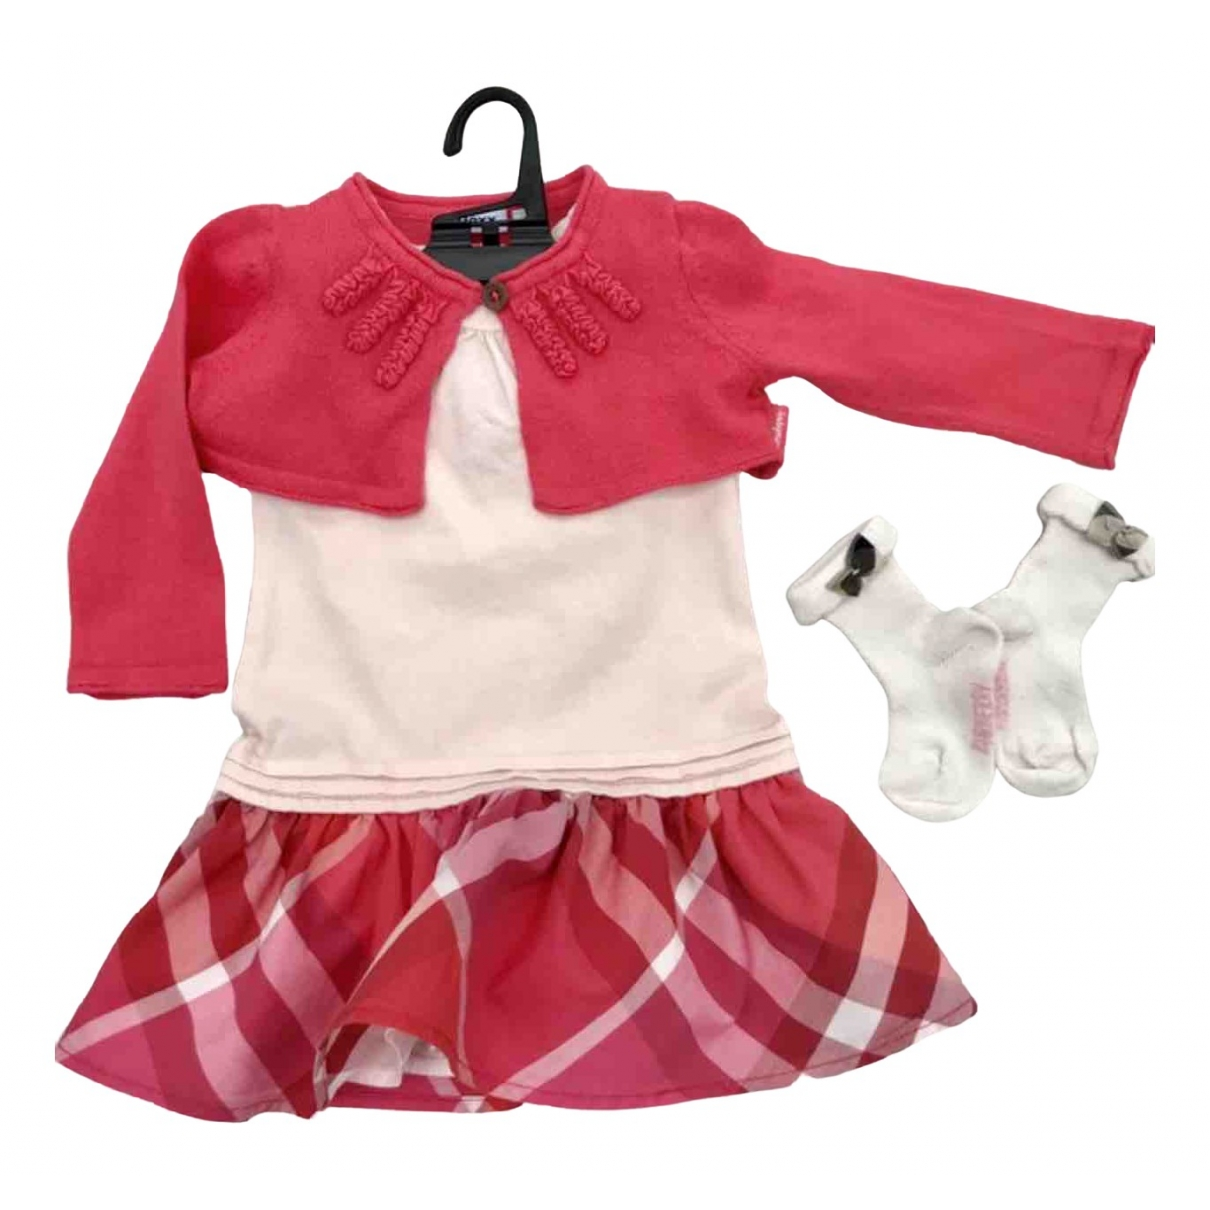 Burberry \N Pink Cotton Outfits for Kids 3 months - up to 60cm FR